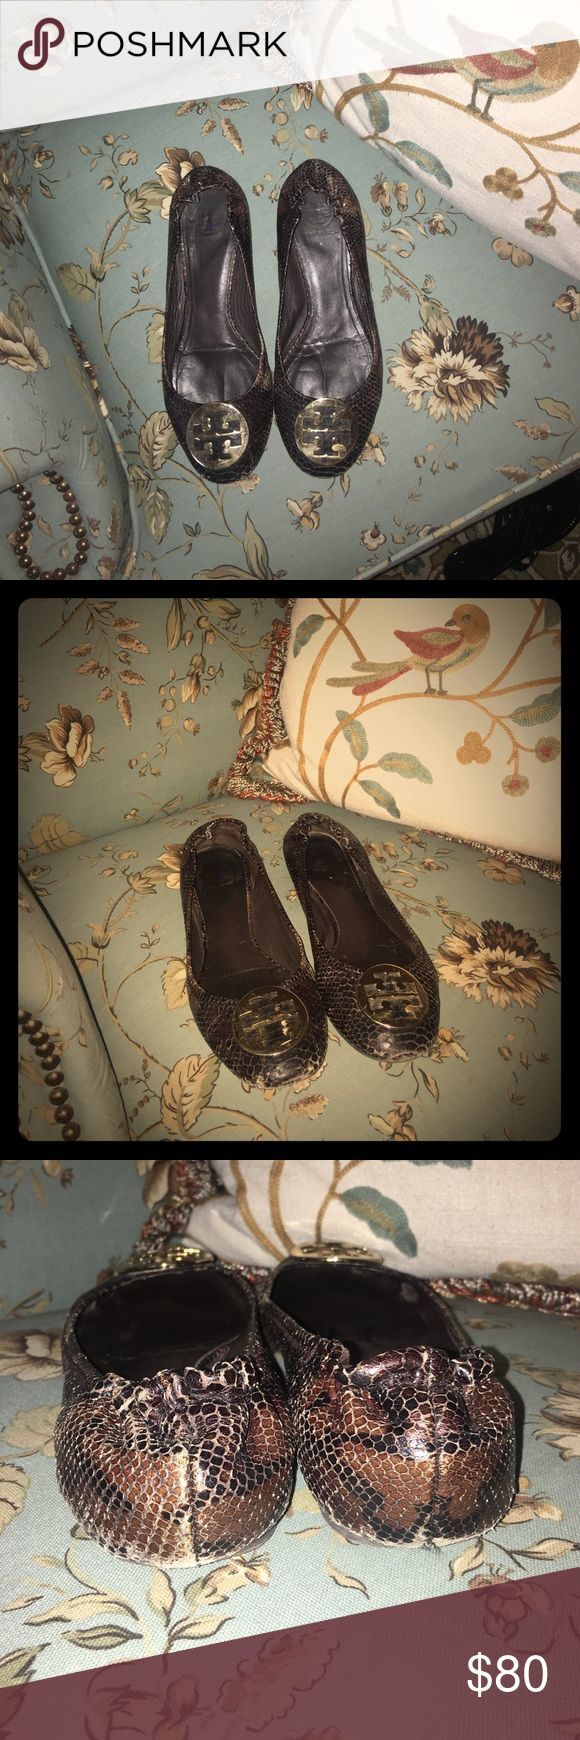 TORY BURCH snakeskin flats! Signs of wear on front, heel, and near big toe joint on the side. Price reflects signs of wear, but still in good used condition! Tory Burch Shoes Flats & Loafers